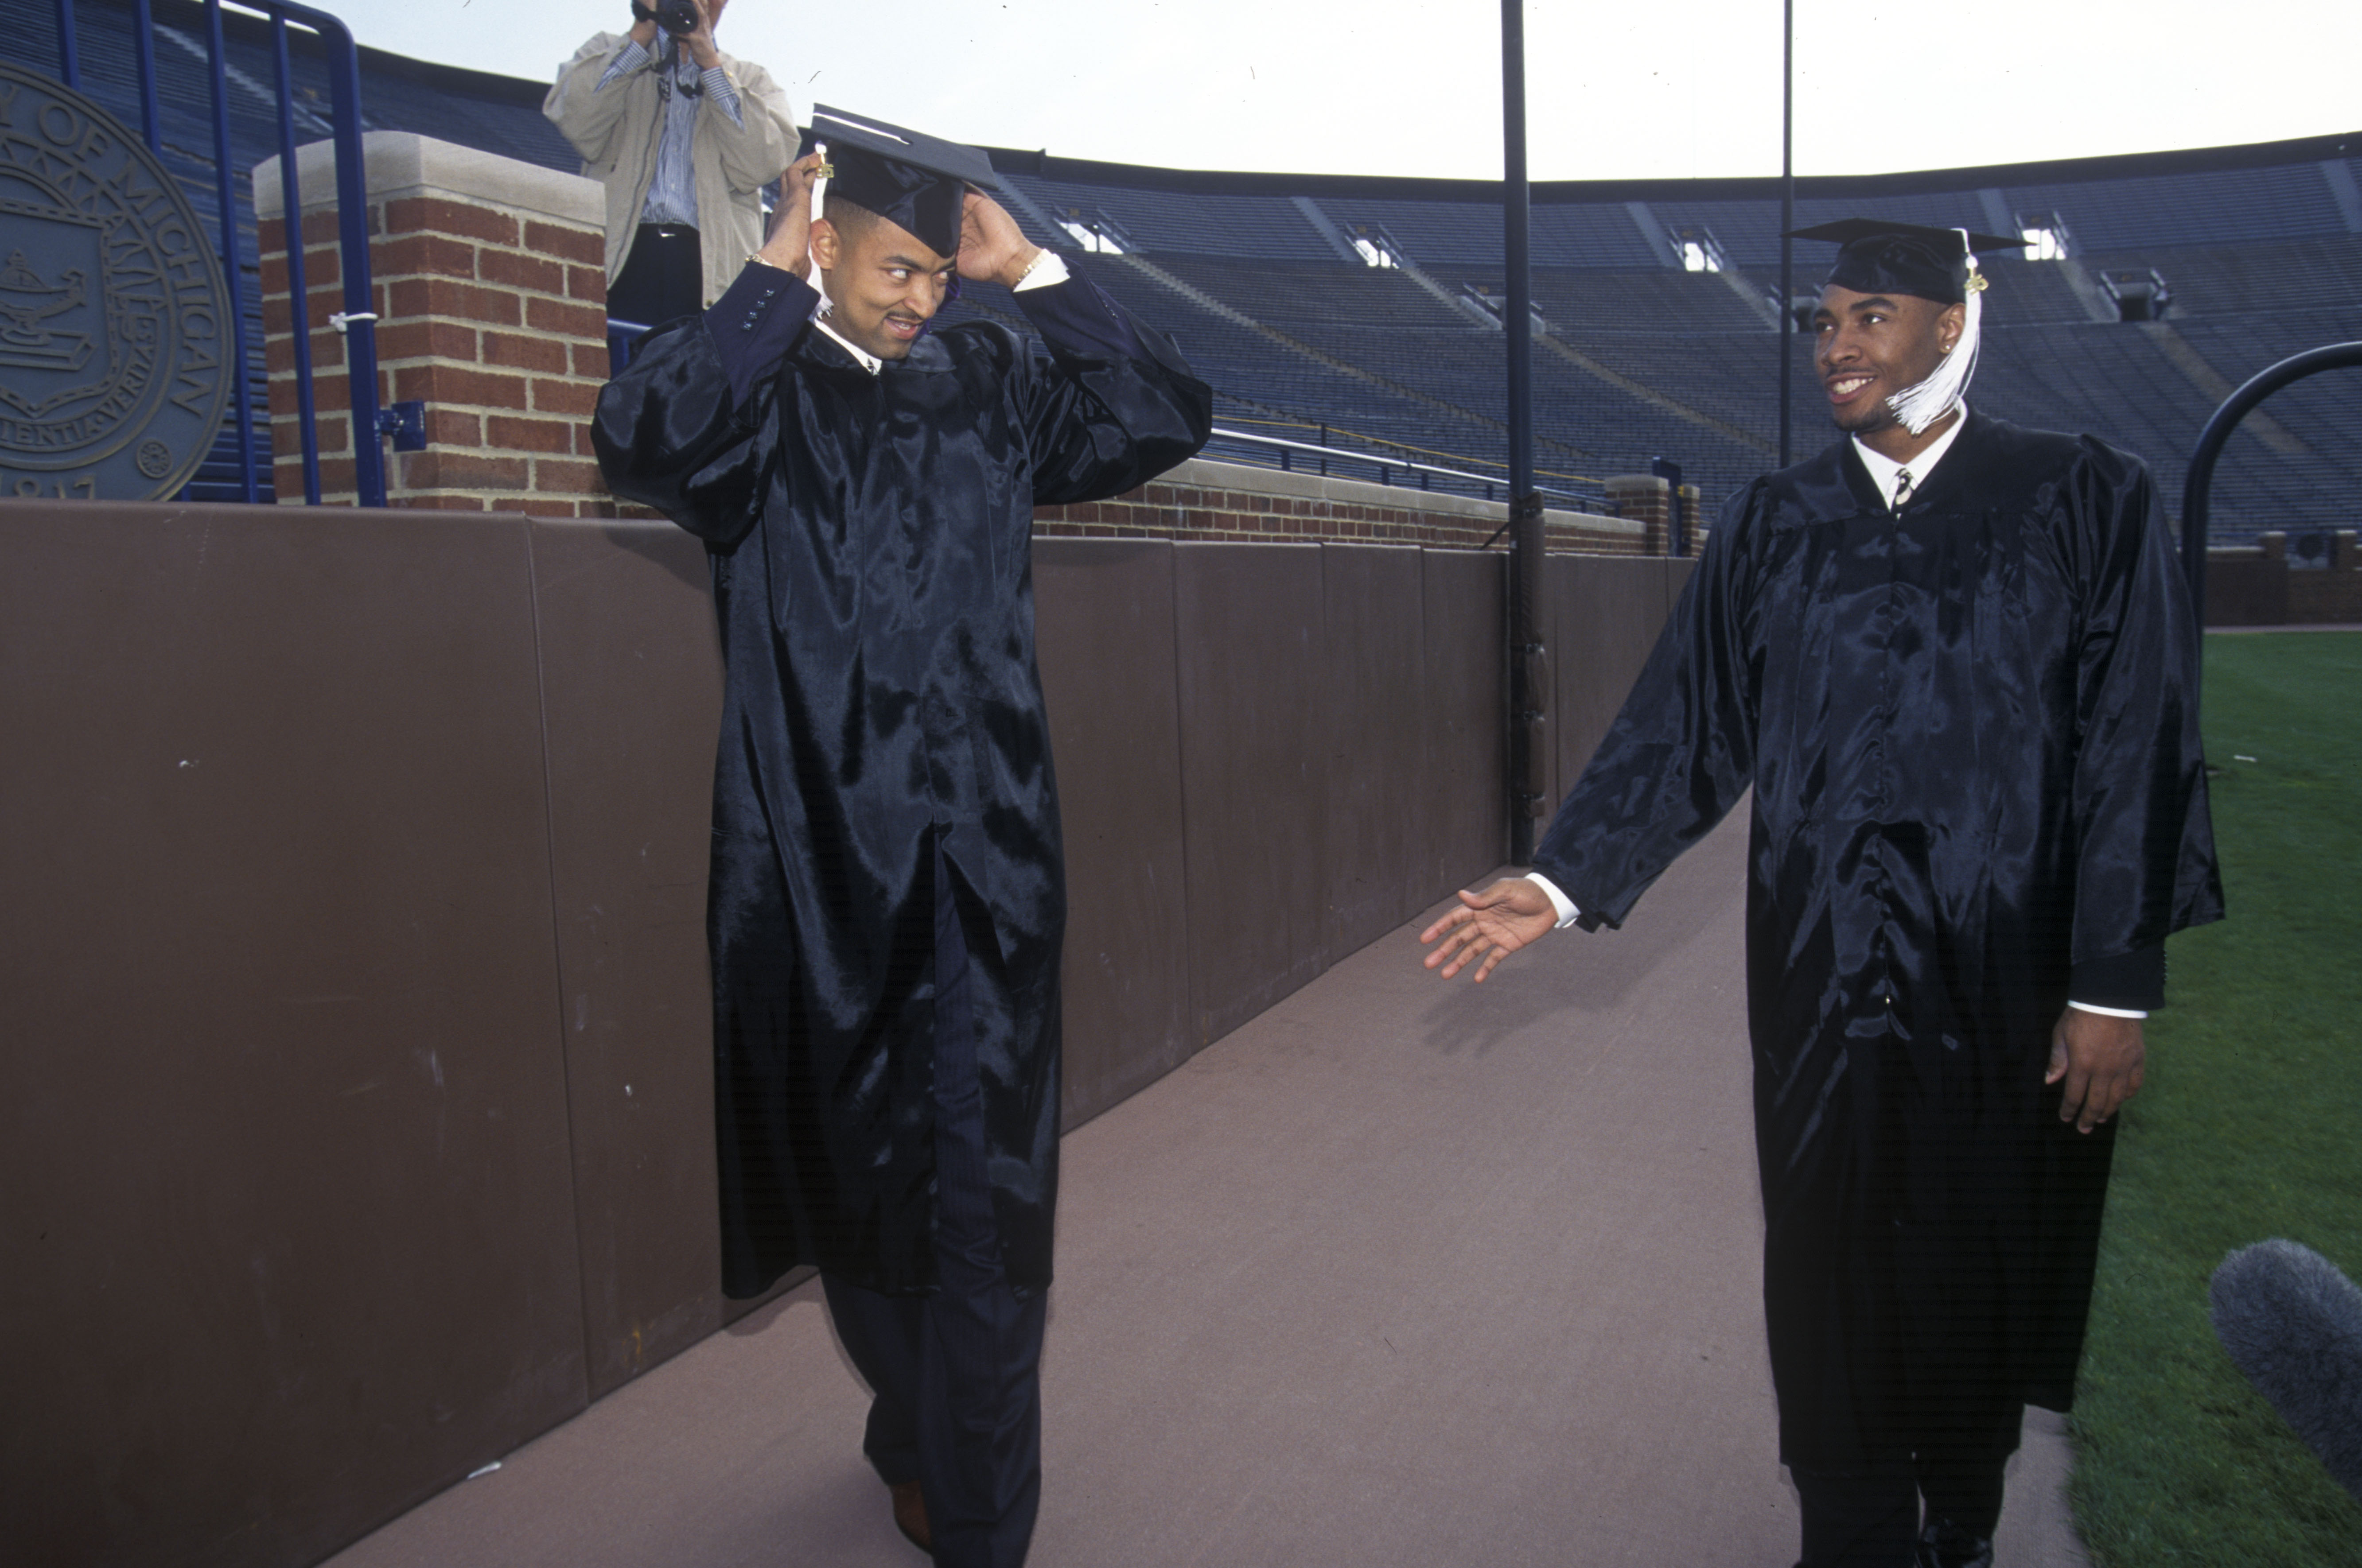 U-M Basketball Player Juwan Howard, left, at Michigan Commencement, April 1995 image